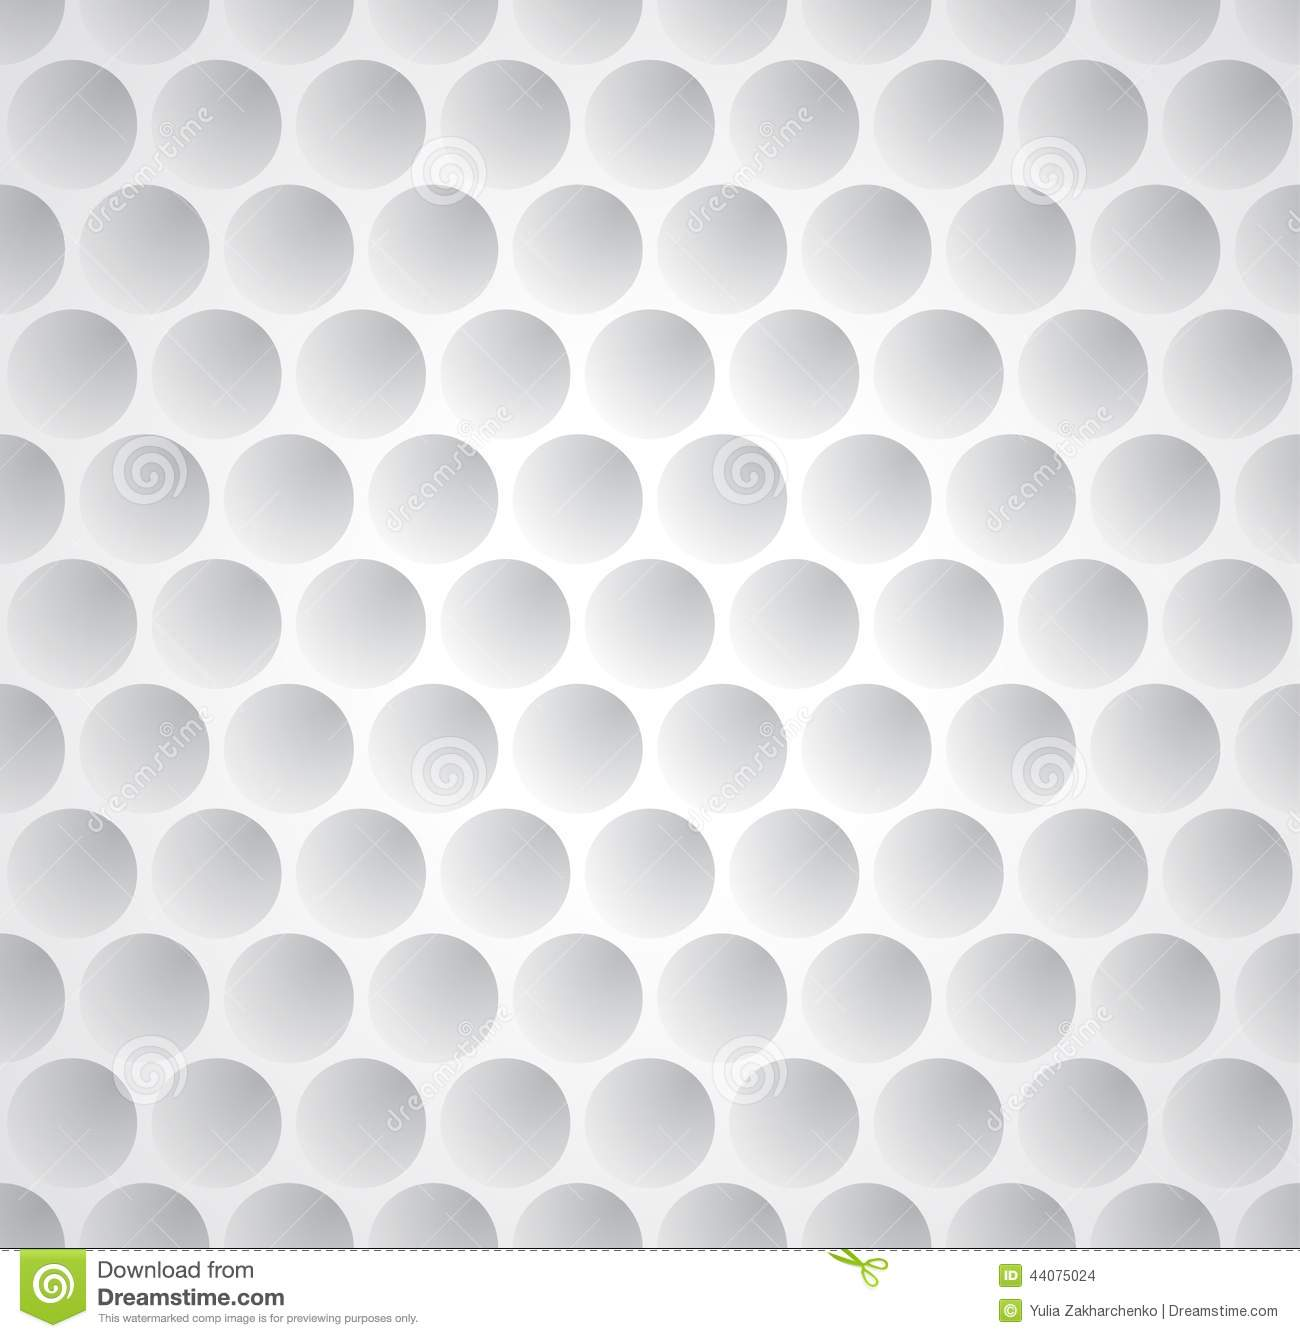 golf ball seamless pattern stock vector illustration of background rh dreamstime com Double Dimple Golf Balls Golf Ball Award